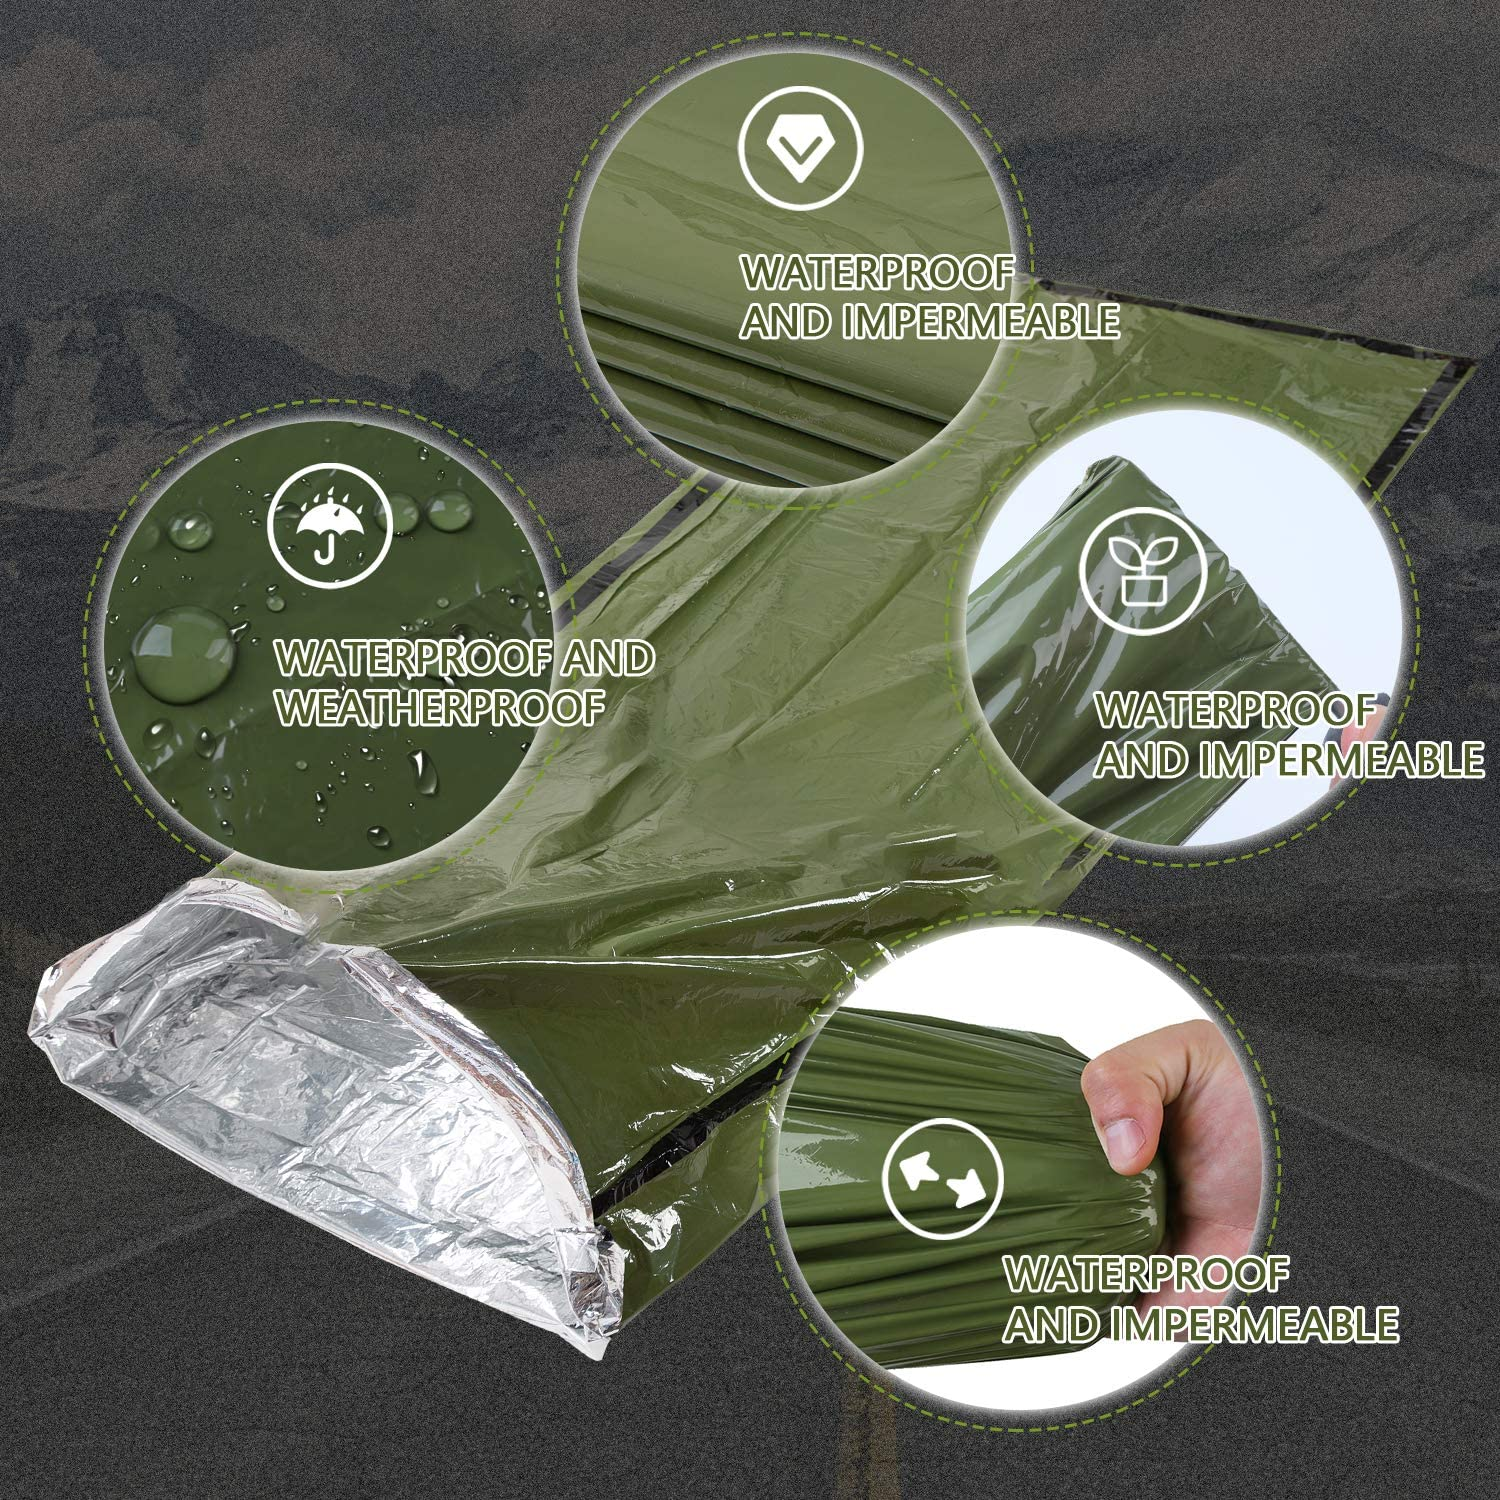 Mezonn Emergency Sleeping Bag /& Tent Shelter Survival Bivy Sack Use as Emergency Blanket Lightweight Survival Gear for Outdoor Hiking Camping Keep Warm After Earthquakes Hurricanes and Other disaster